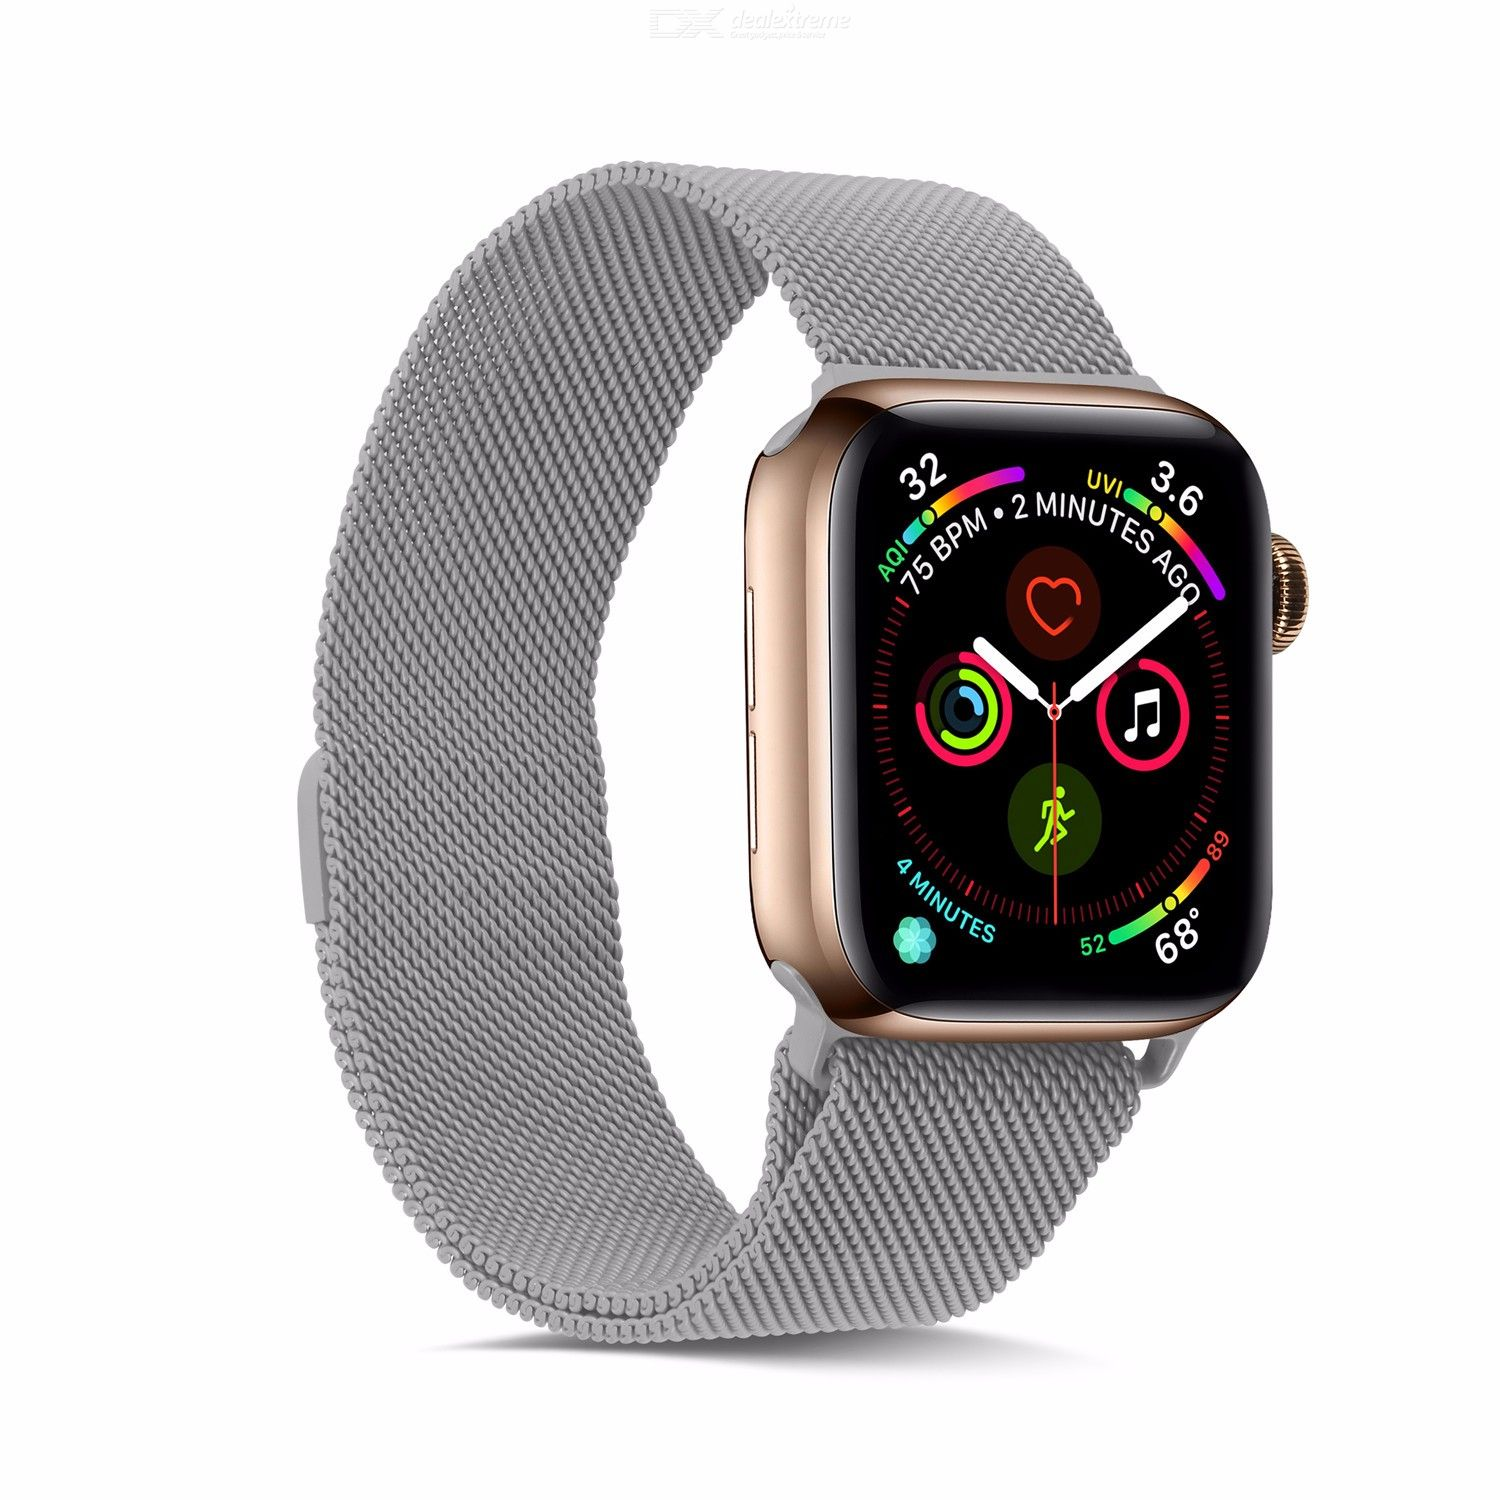 Milanese Loop Strap For Apple Watch 44mm 40mm 38mm 42mm, Magnetic Buckle Stainless Steel Replacement Watch Band for iWatch 12345